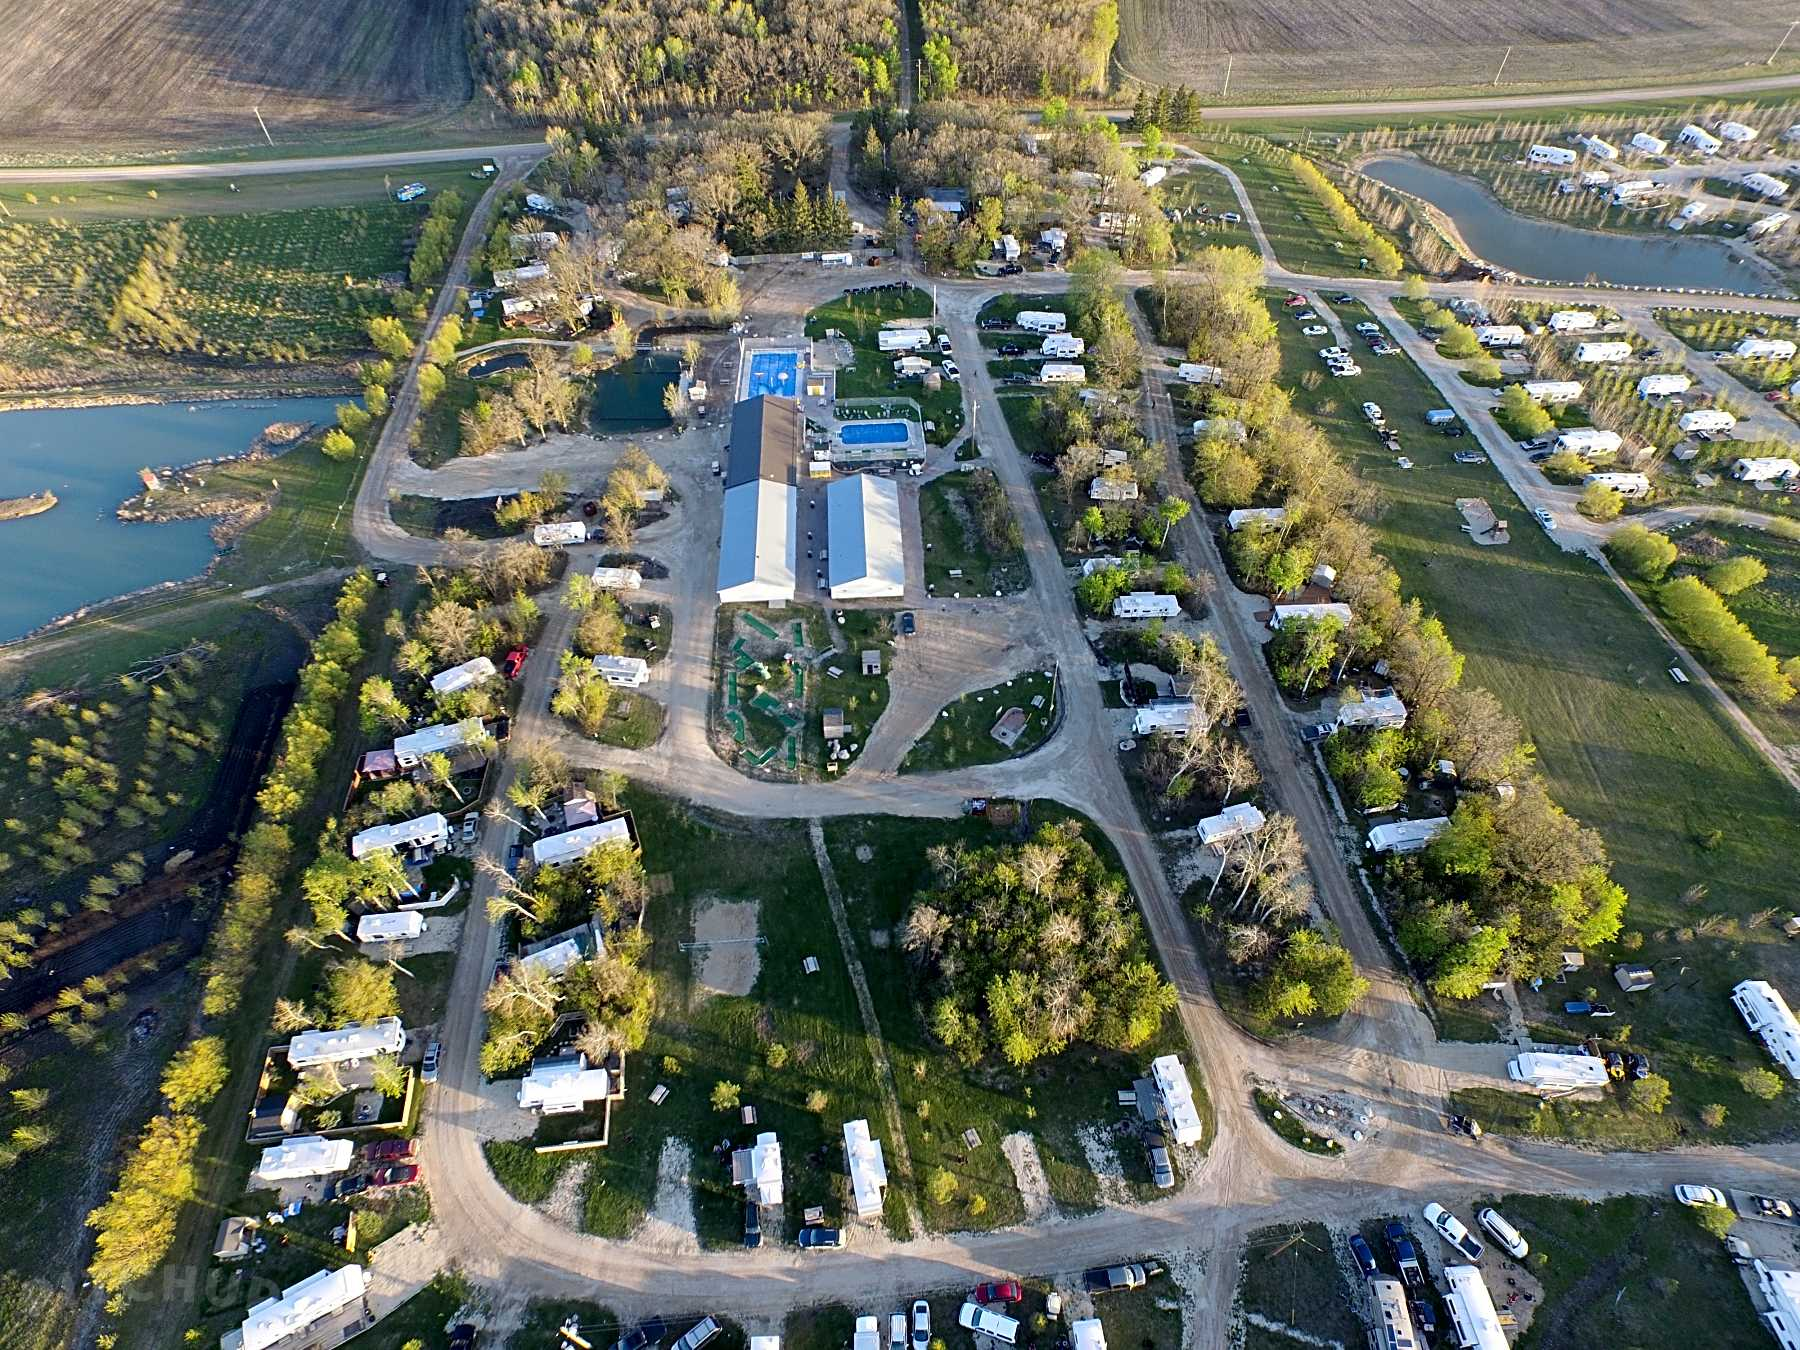 Electric site | Best Campgrounds in Manitoba, Canada 2019